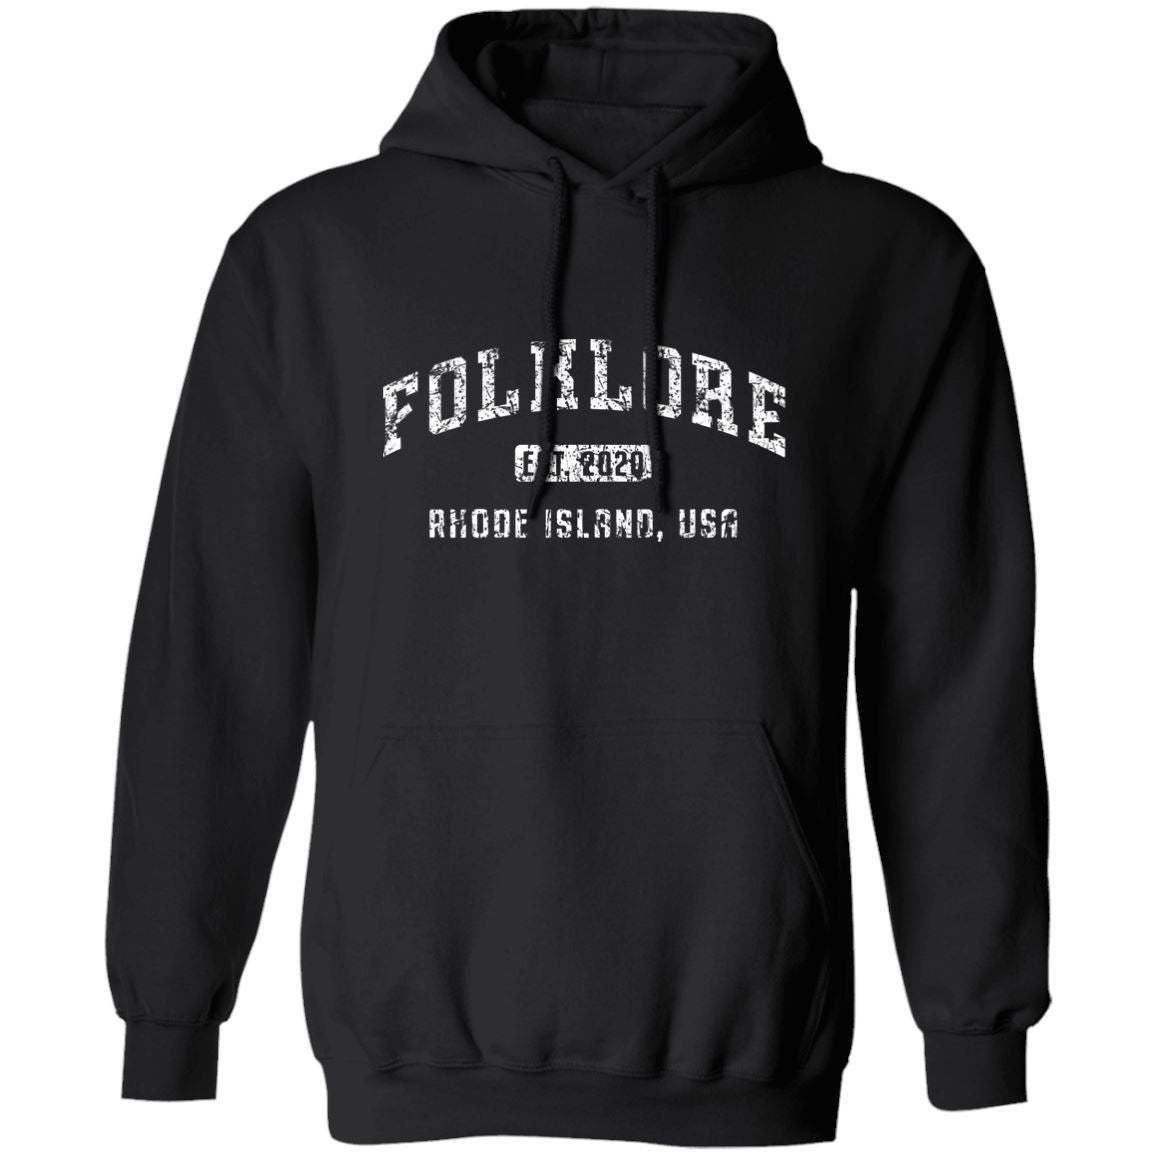 Folklore Album Sweatshirt • Taylor Swift Hoodie Sweatshirts CustomCat Black S